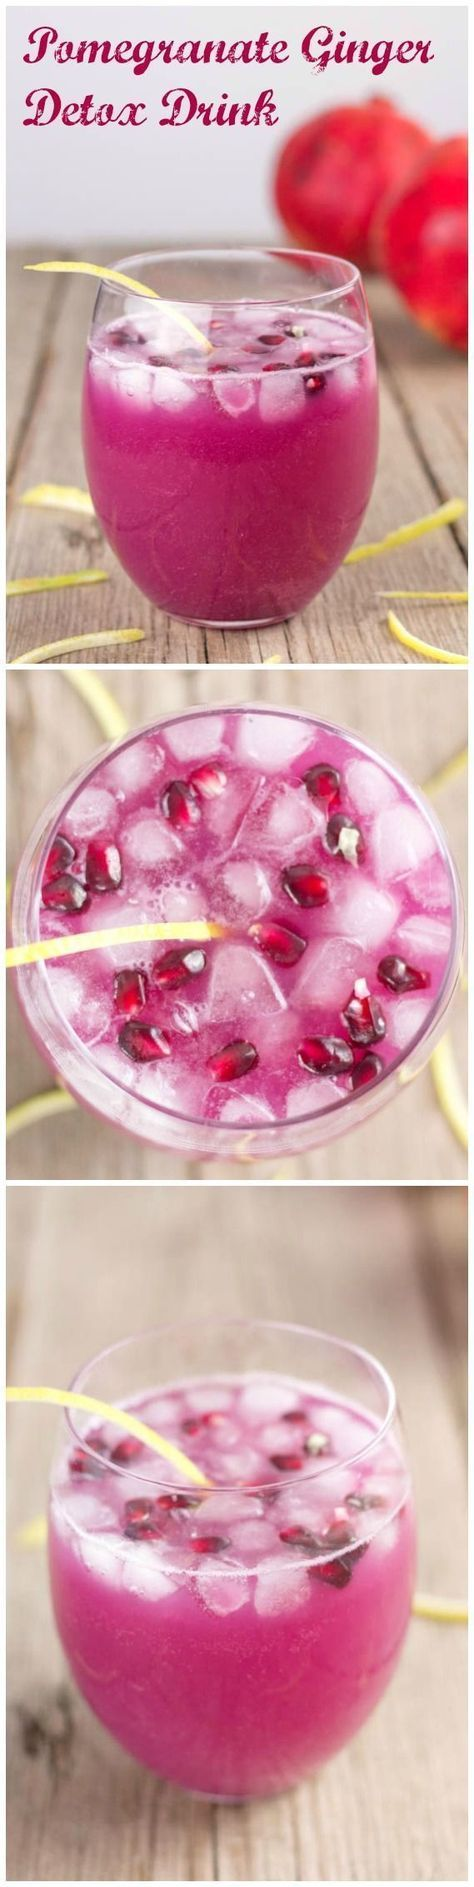 Refreshing and healthy detox drink.